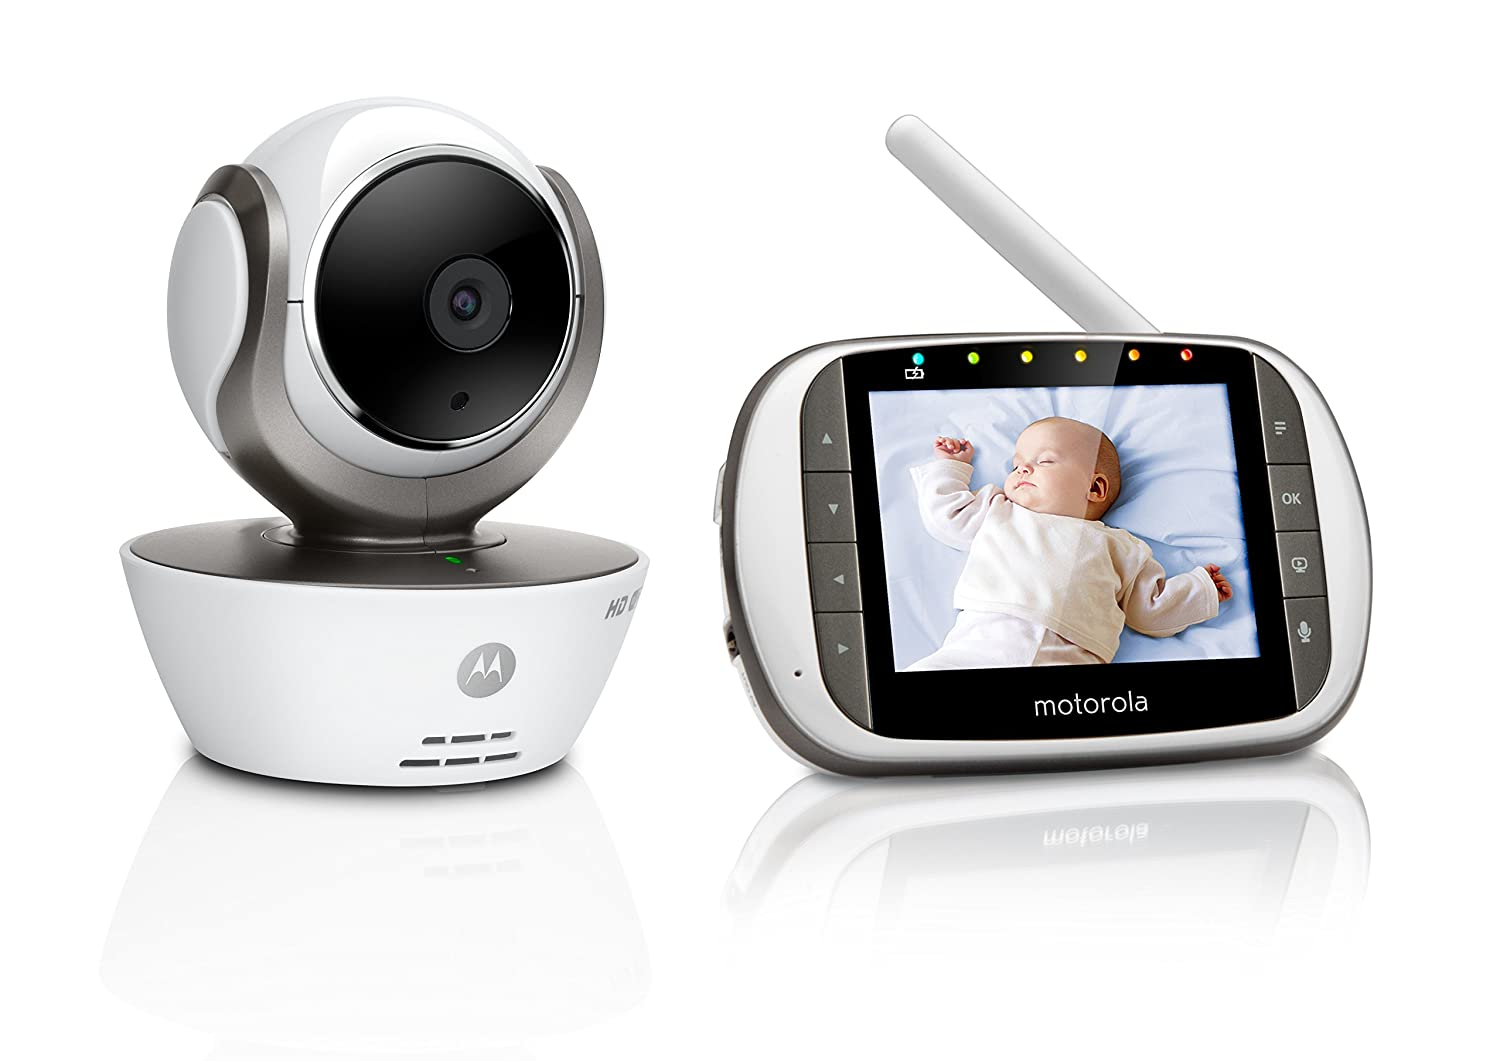 motorola 5 inch portable video baby monitor with wifi mbp855connect. motorola mbp853 connect wi-fi hd video baby monitor: amazon.co.uk: 5 inch portable monitor with wifi mbp855connect t